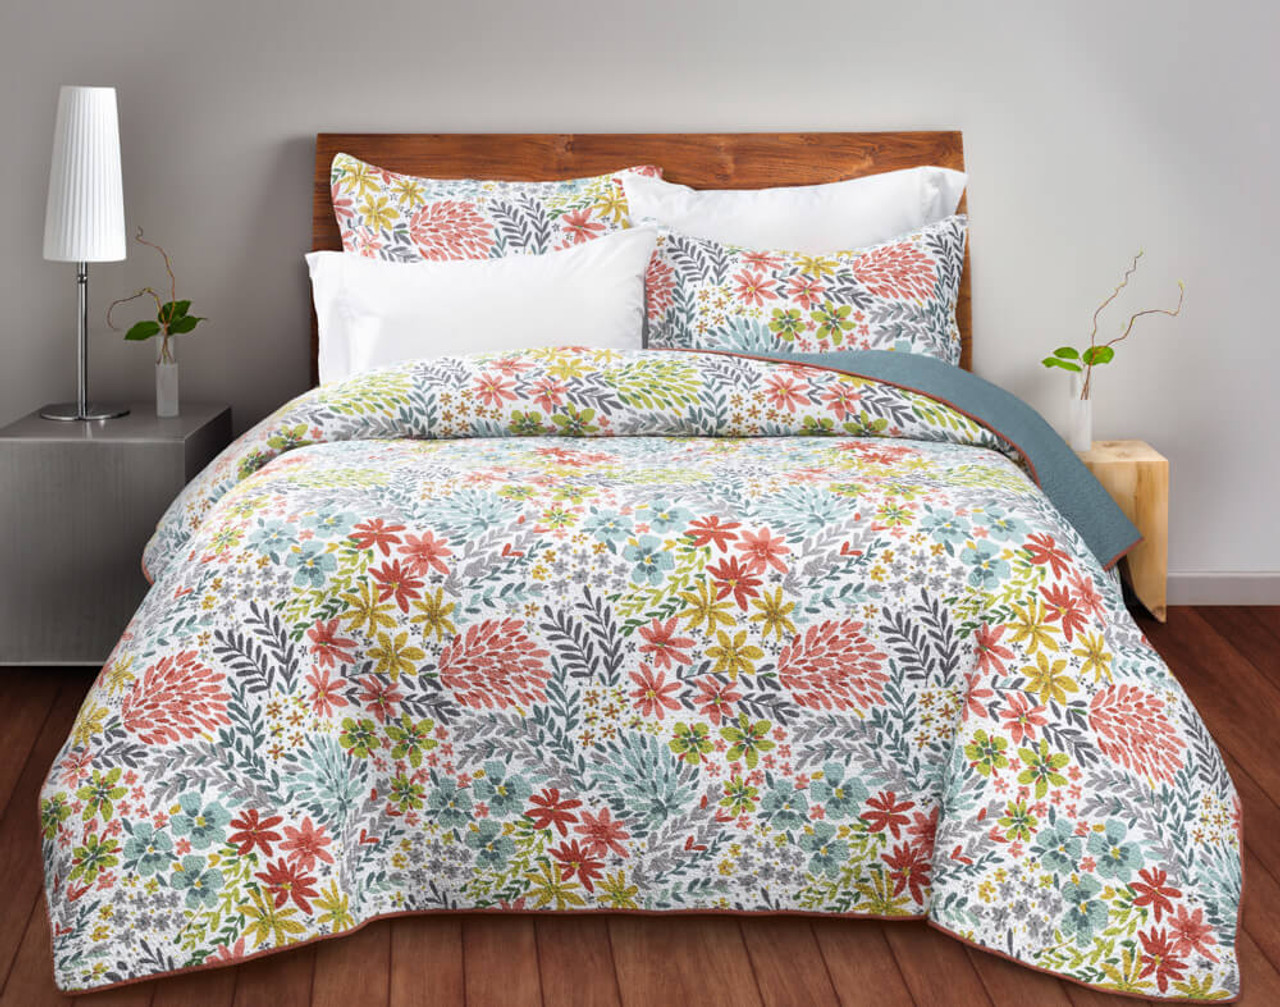 Camrose Cotton Quilt Set, featuring vibrant botanicals in shades of terracotta, lime green, grey and pink on a white background.